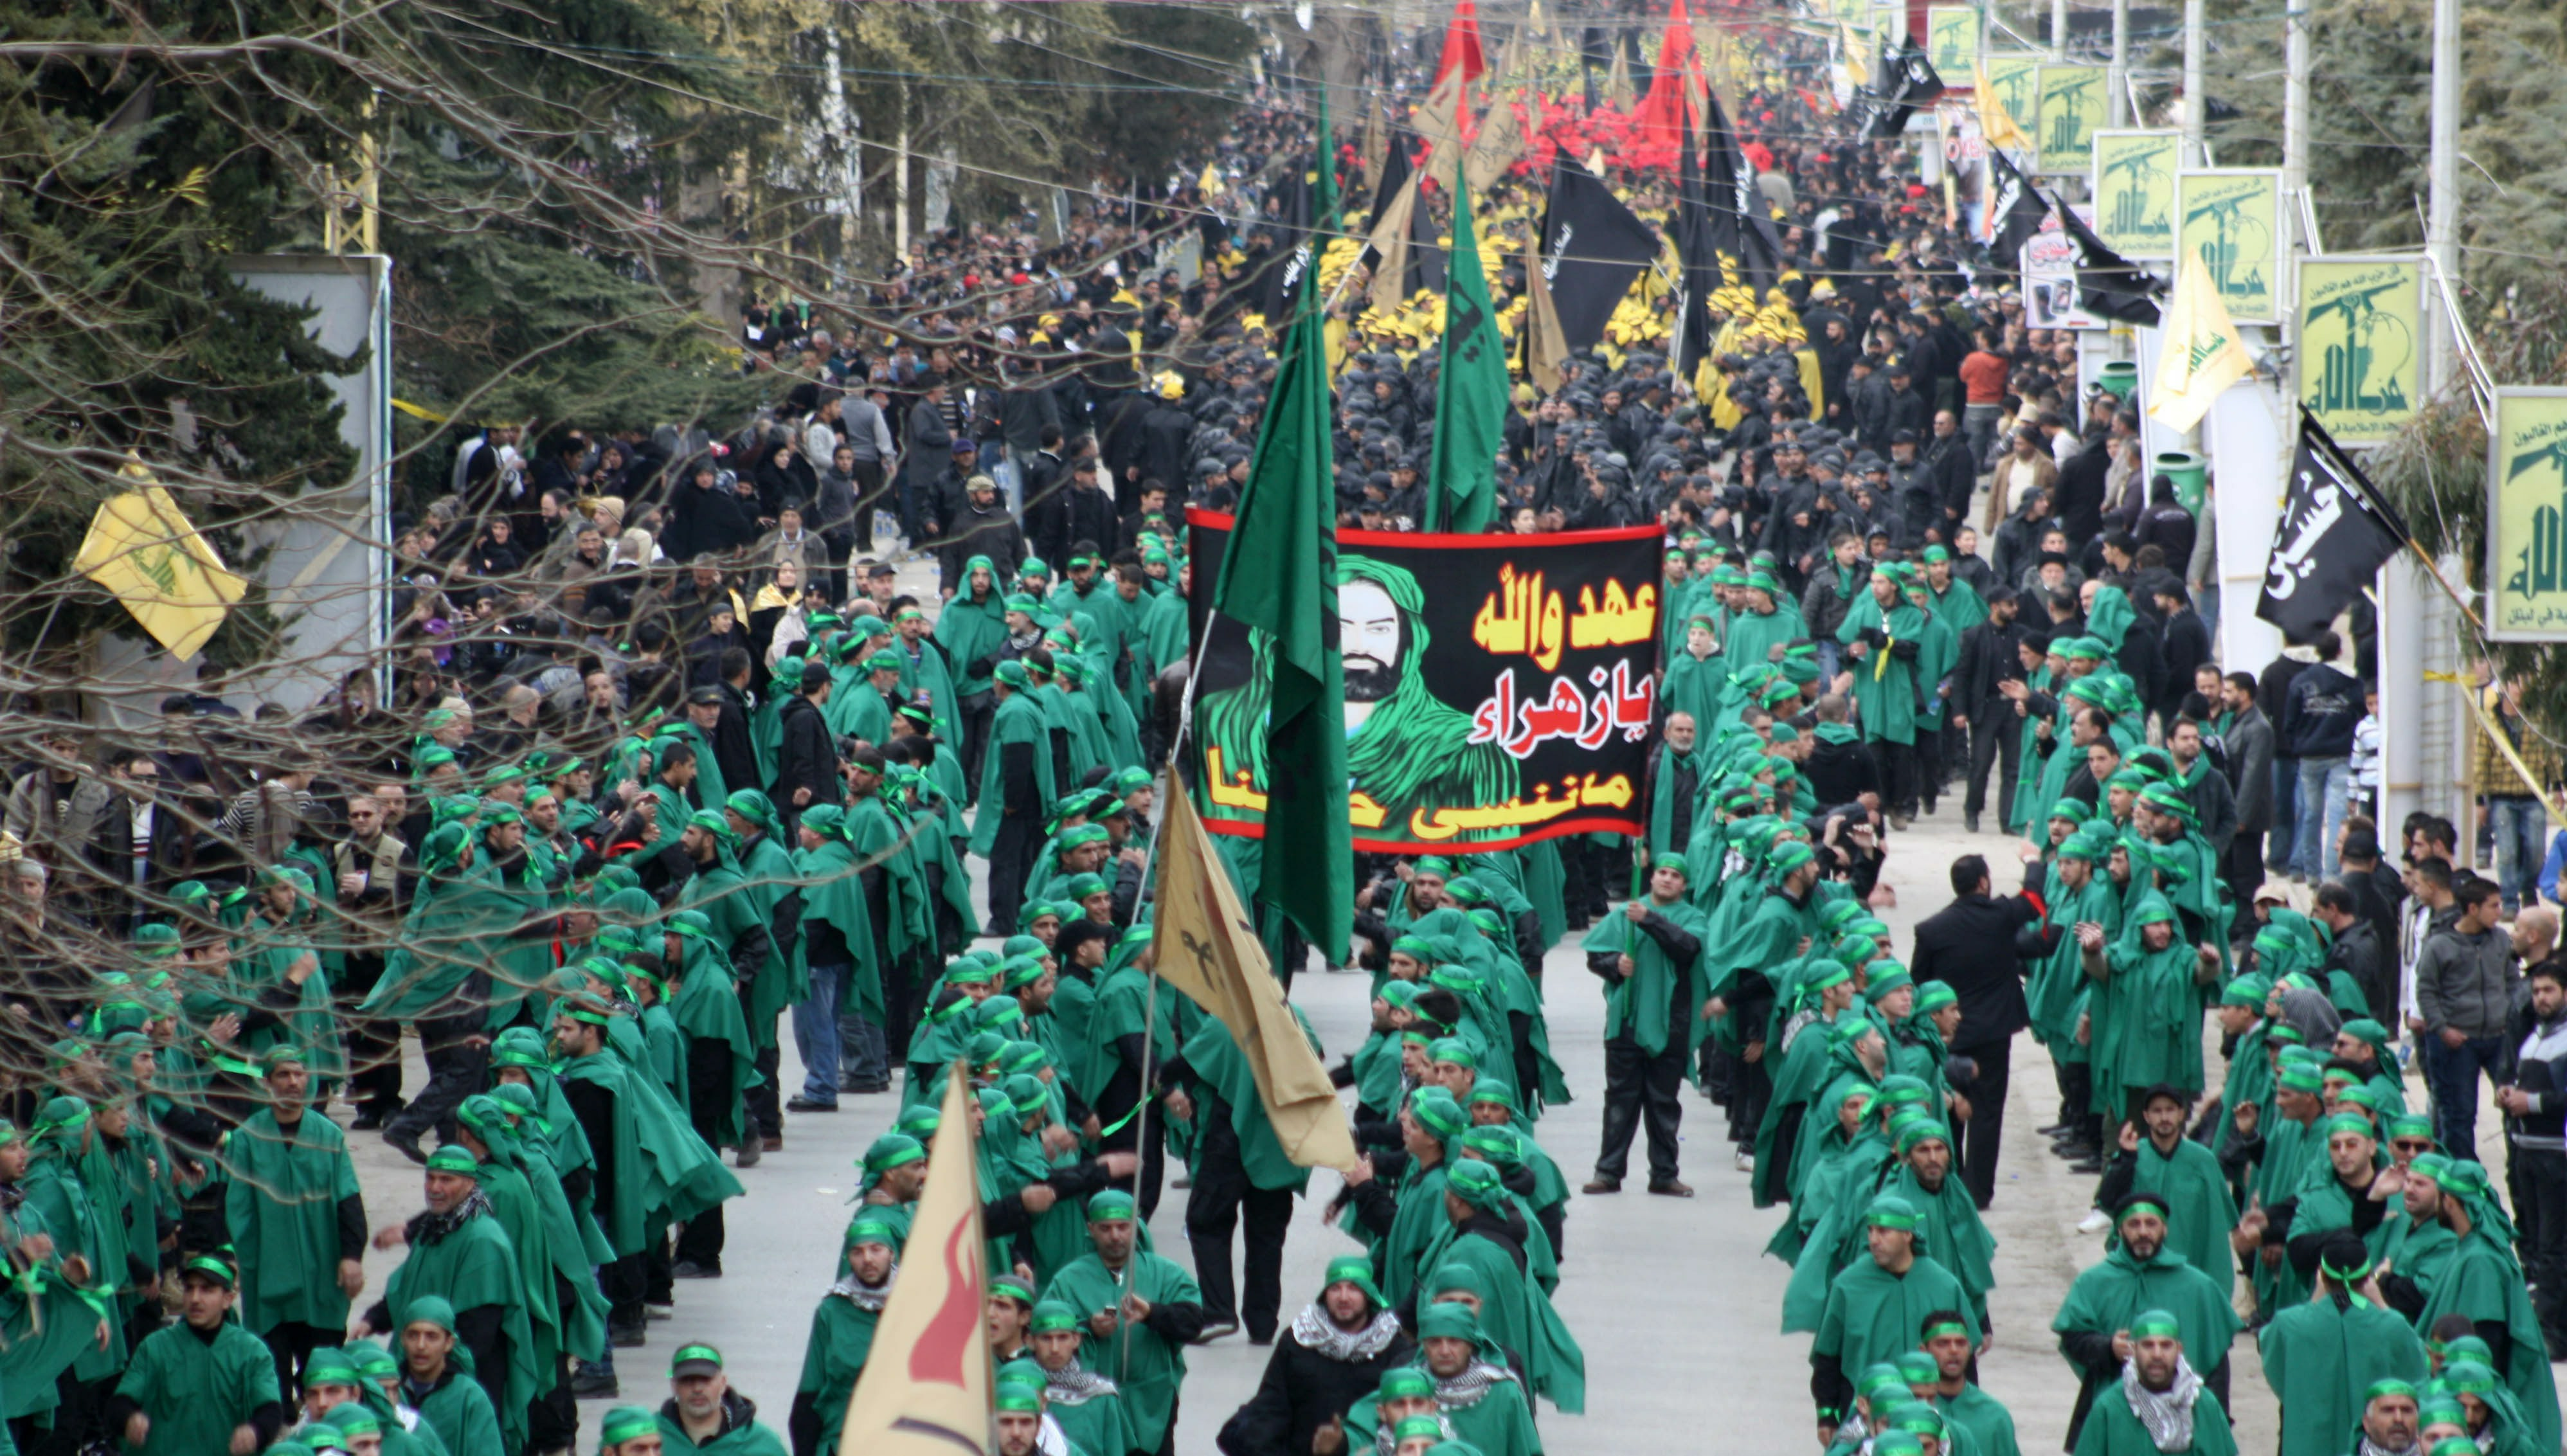 The inner workings of Hezbollah